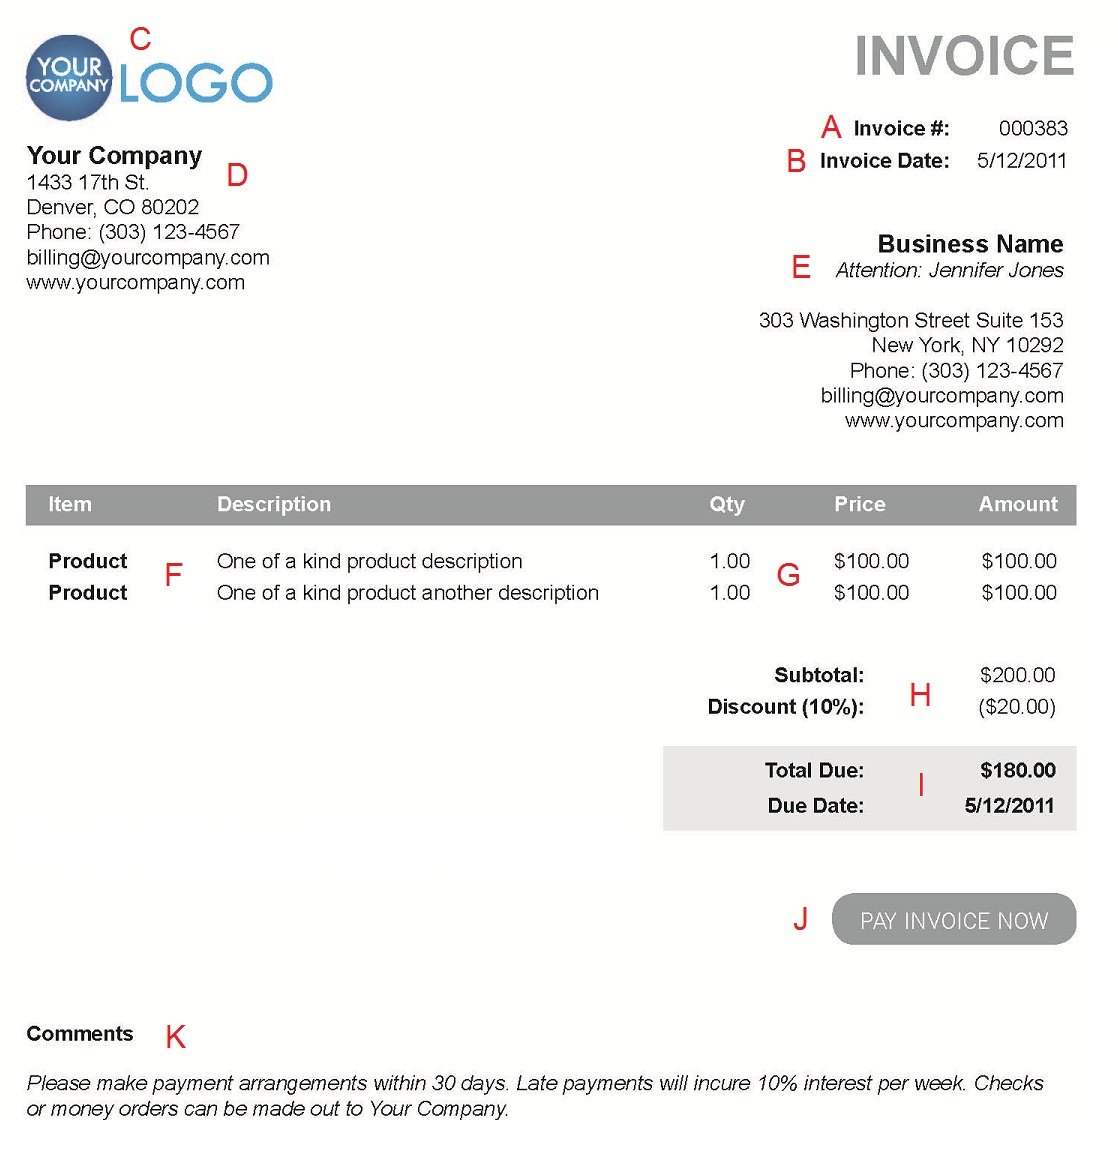 Theologygeekblogus  Nice The  Different Sections Of An Electronic Payment Invoice With Fascinating A  With Captivating Received Receipt Also How To Send A Certified Letter With Return Receipt In Addition I Confirm Receipt And I Acknowledge Receipt Of Your Email As Well As Ocr Receipts Additionally Receipt Scanning Service From Paysimplecom With Theologygeekblogus  Fascinating The  Different Sections Of An Electronic Payment Invoice With Captivating A  And Nice Received Receipt Also How To Send A Certified Letter With Return Receipt In Addition I Confirm Receipt From Paysimplecom